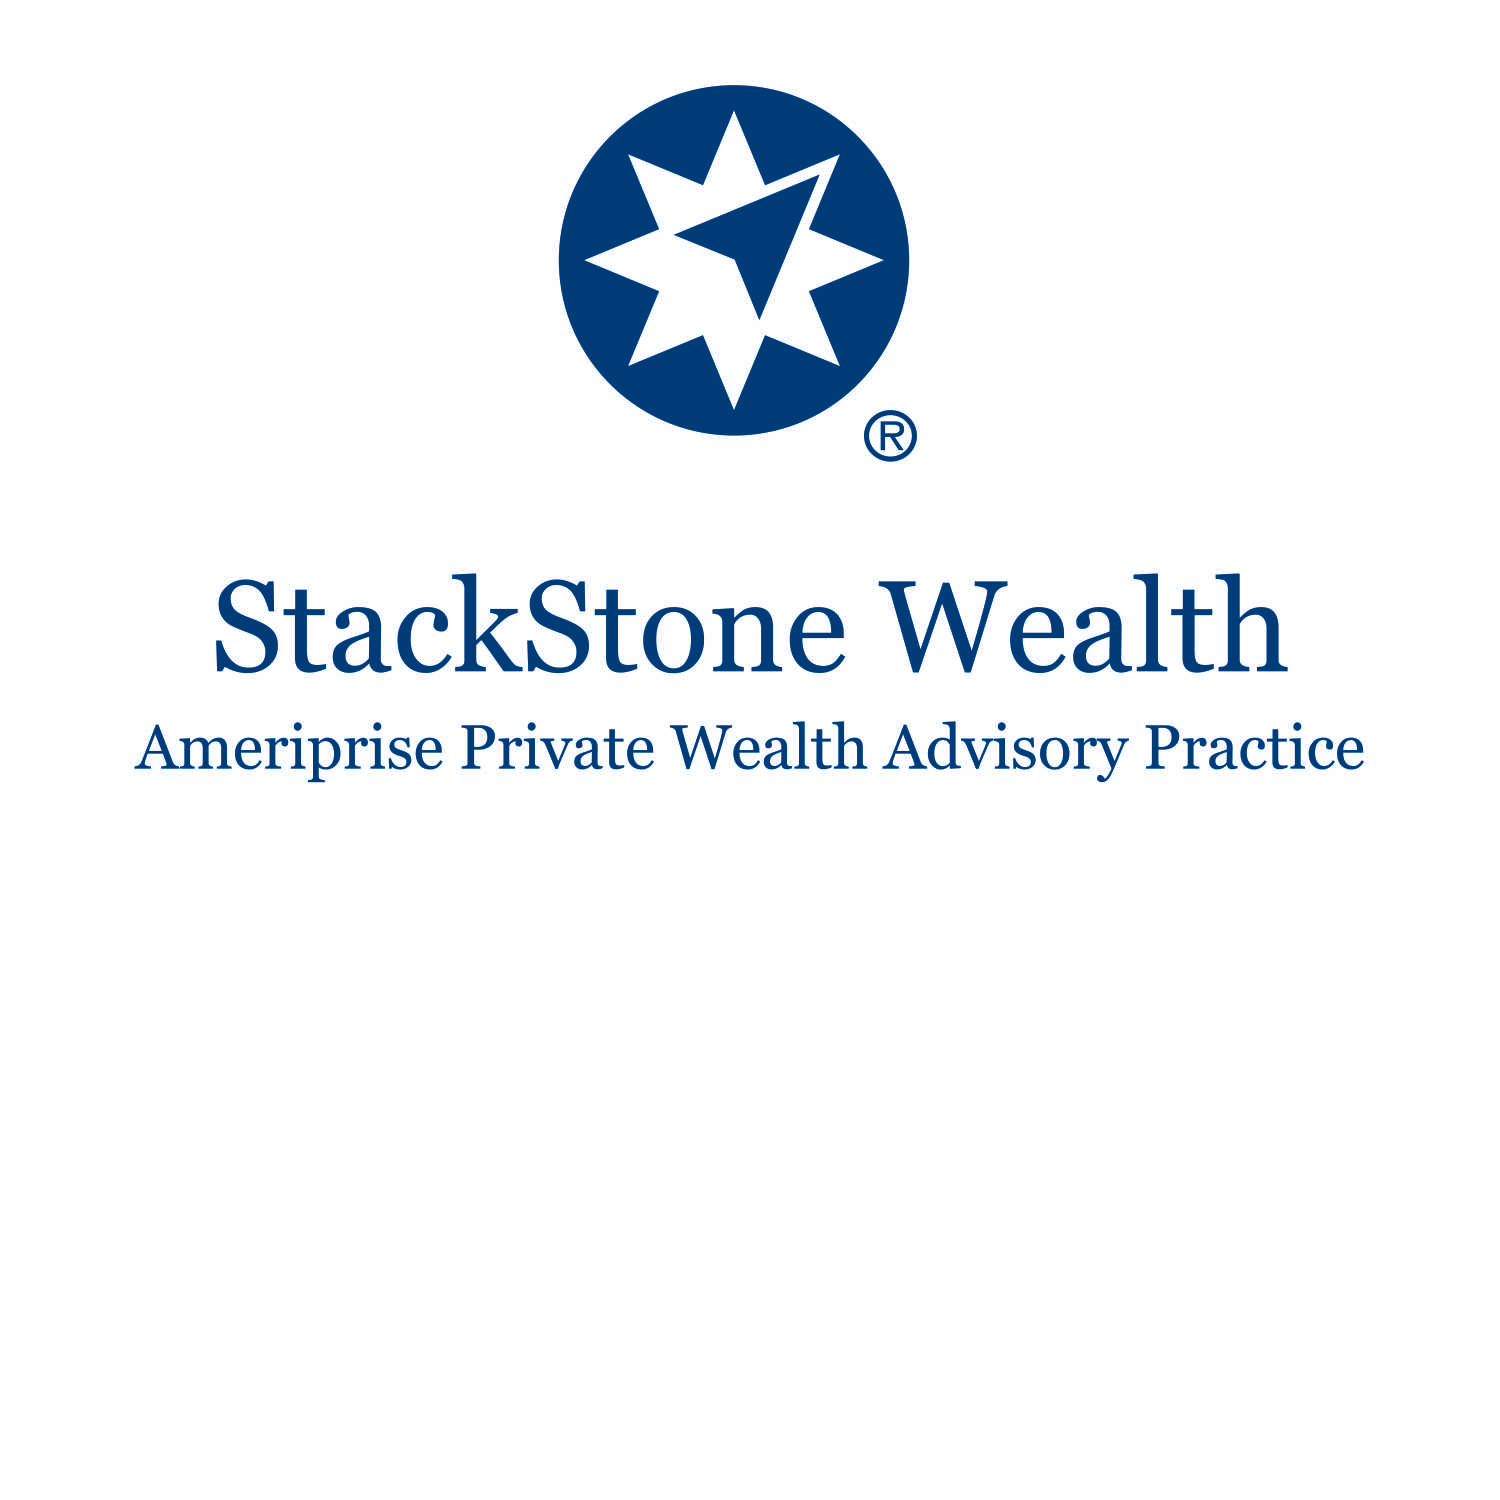 StackStone Wealth Logo